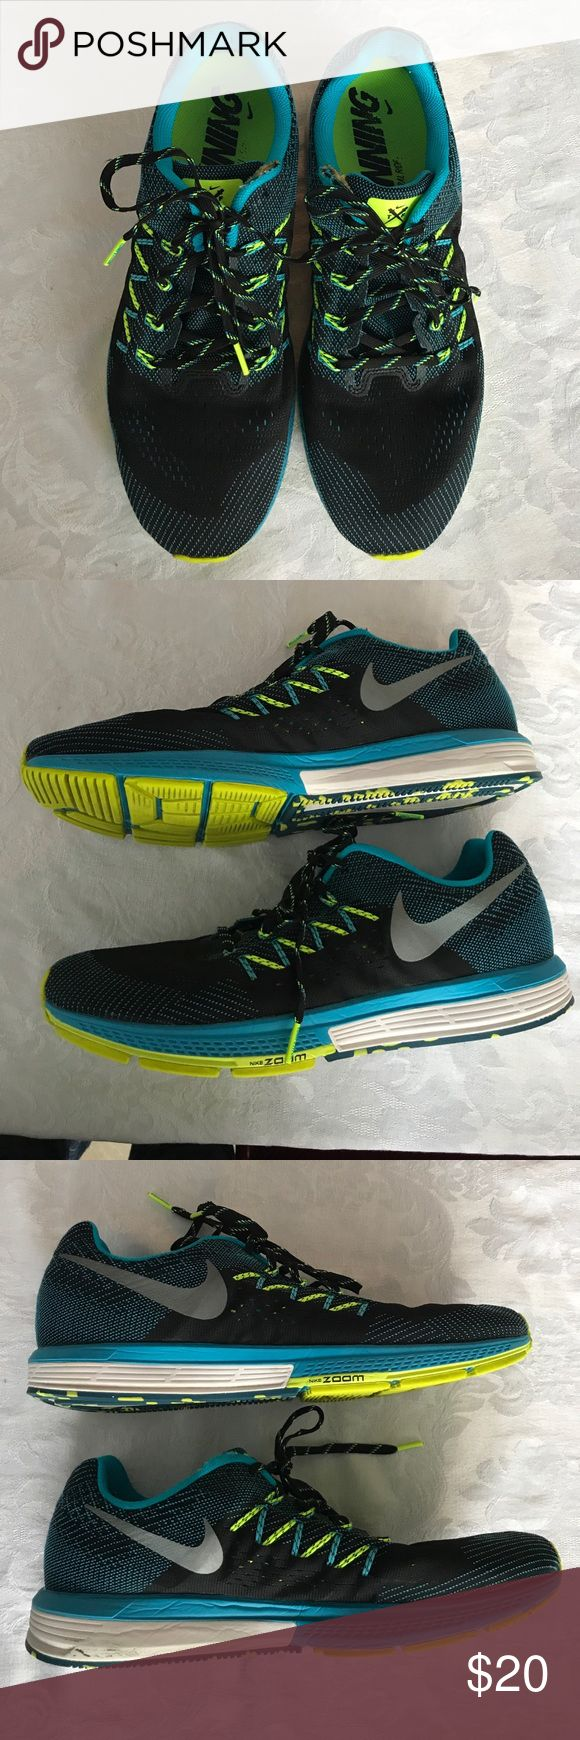 Men's Nike Zoom Neutral Ride Running Shoes Men's Nike black/teal/chartreuse Zoom Vomero 10 neutral running shoes. In great used condition other than worn spot on each shoe on top above laces (see photos). Nike Shoes Sneakers